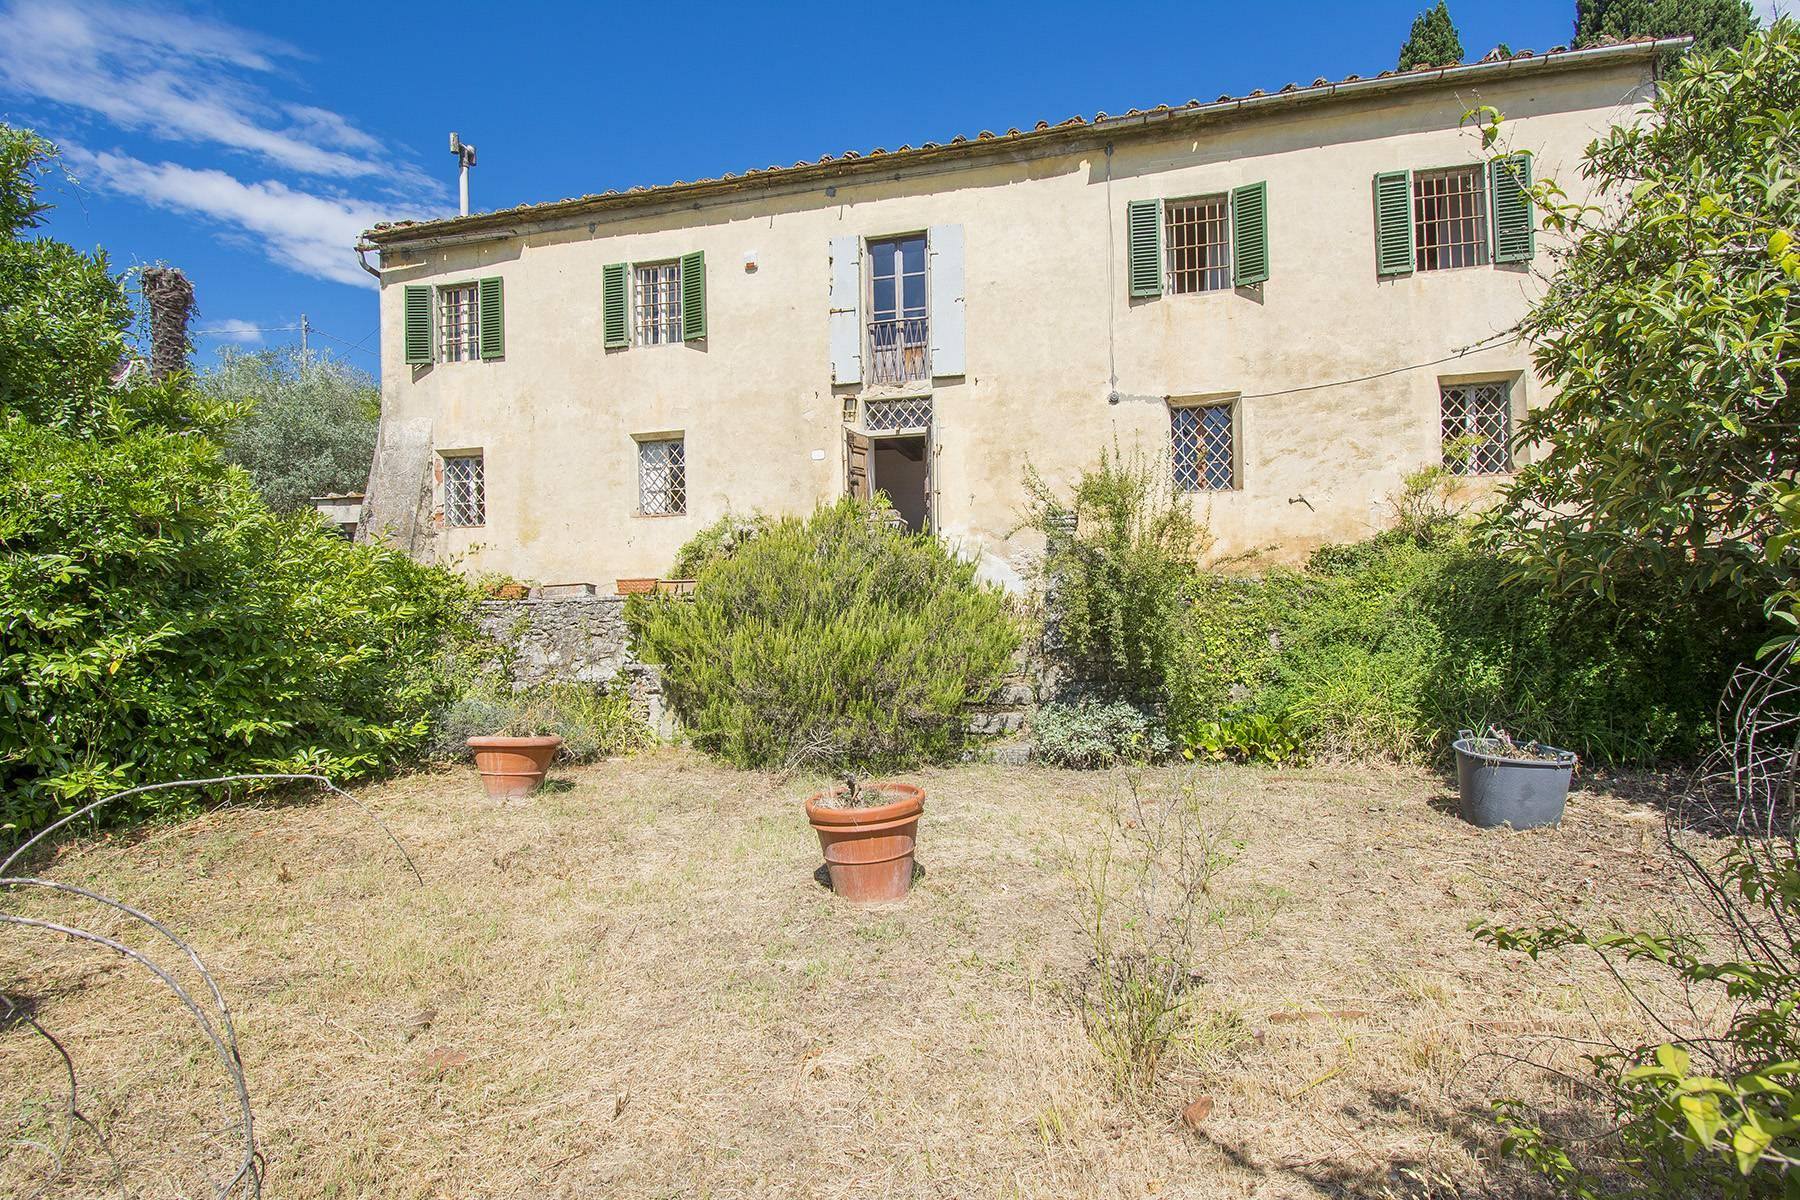 Charming farmhouse with a Xth century parish church in the Pistoia countryside - 5